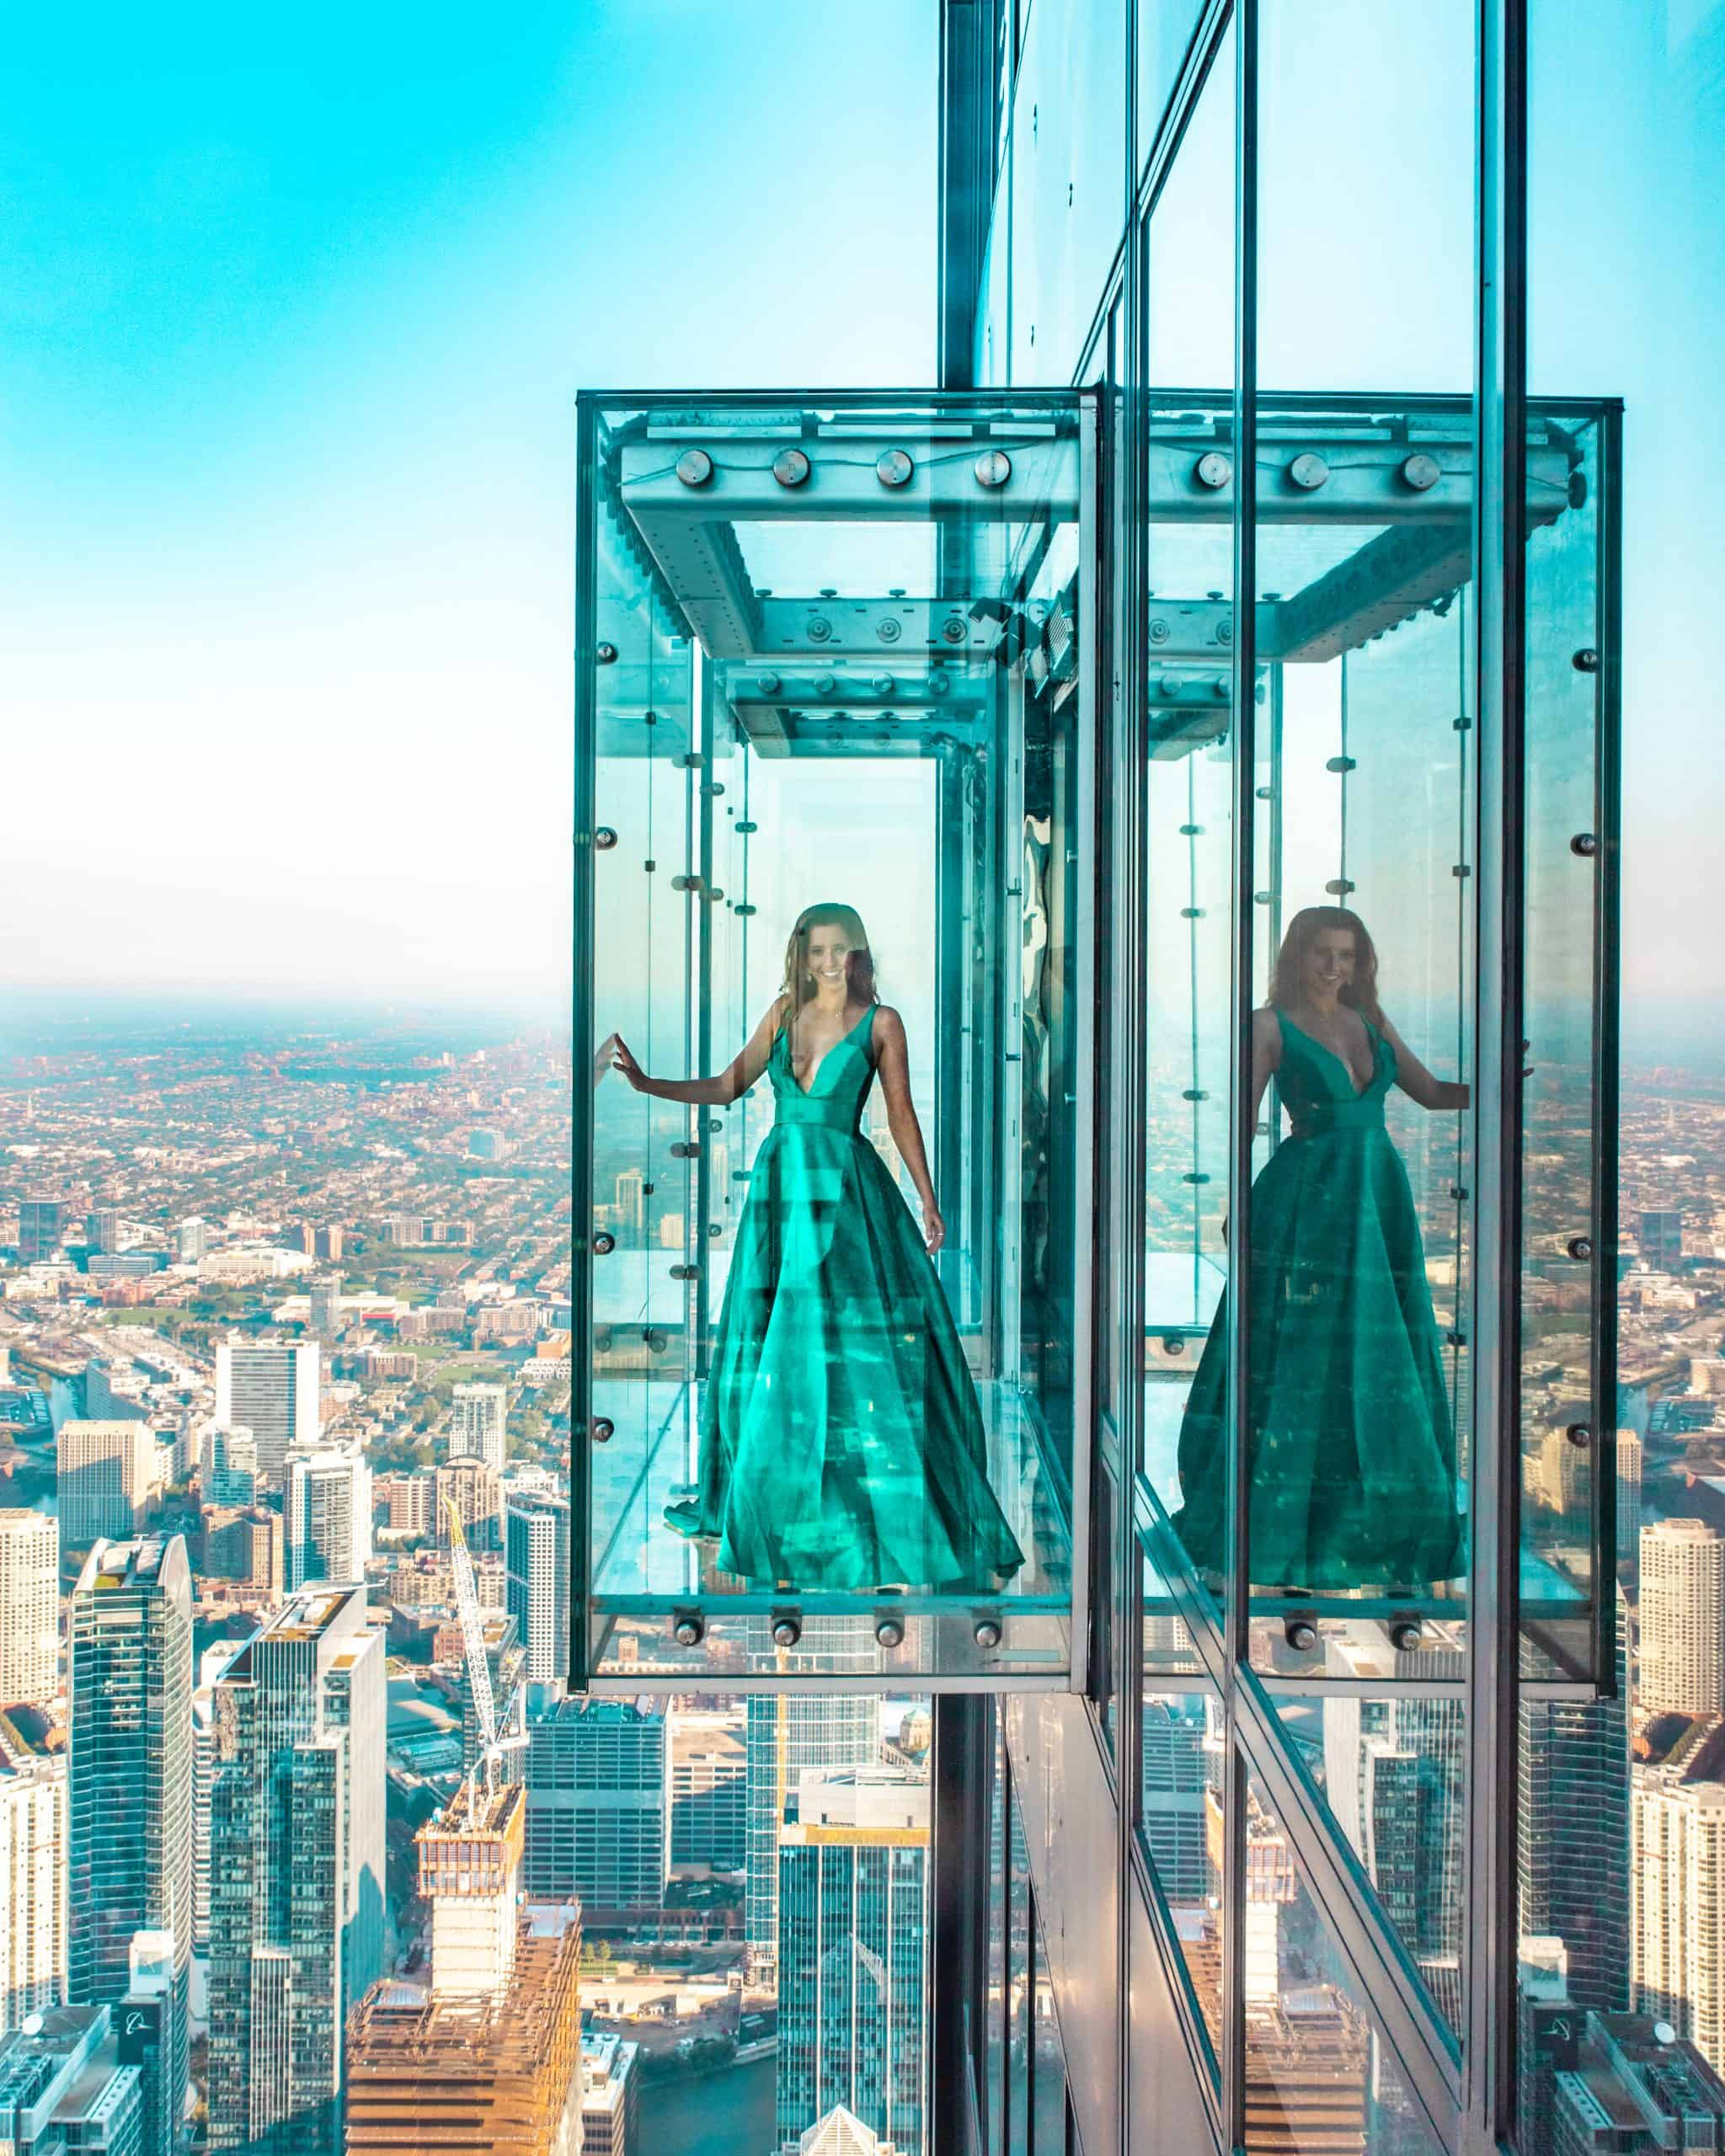 Girl standing on Chicago Skydeck Glass Ledge 1,323 feet above ground - The Next Trip